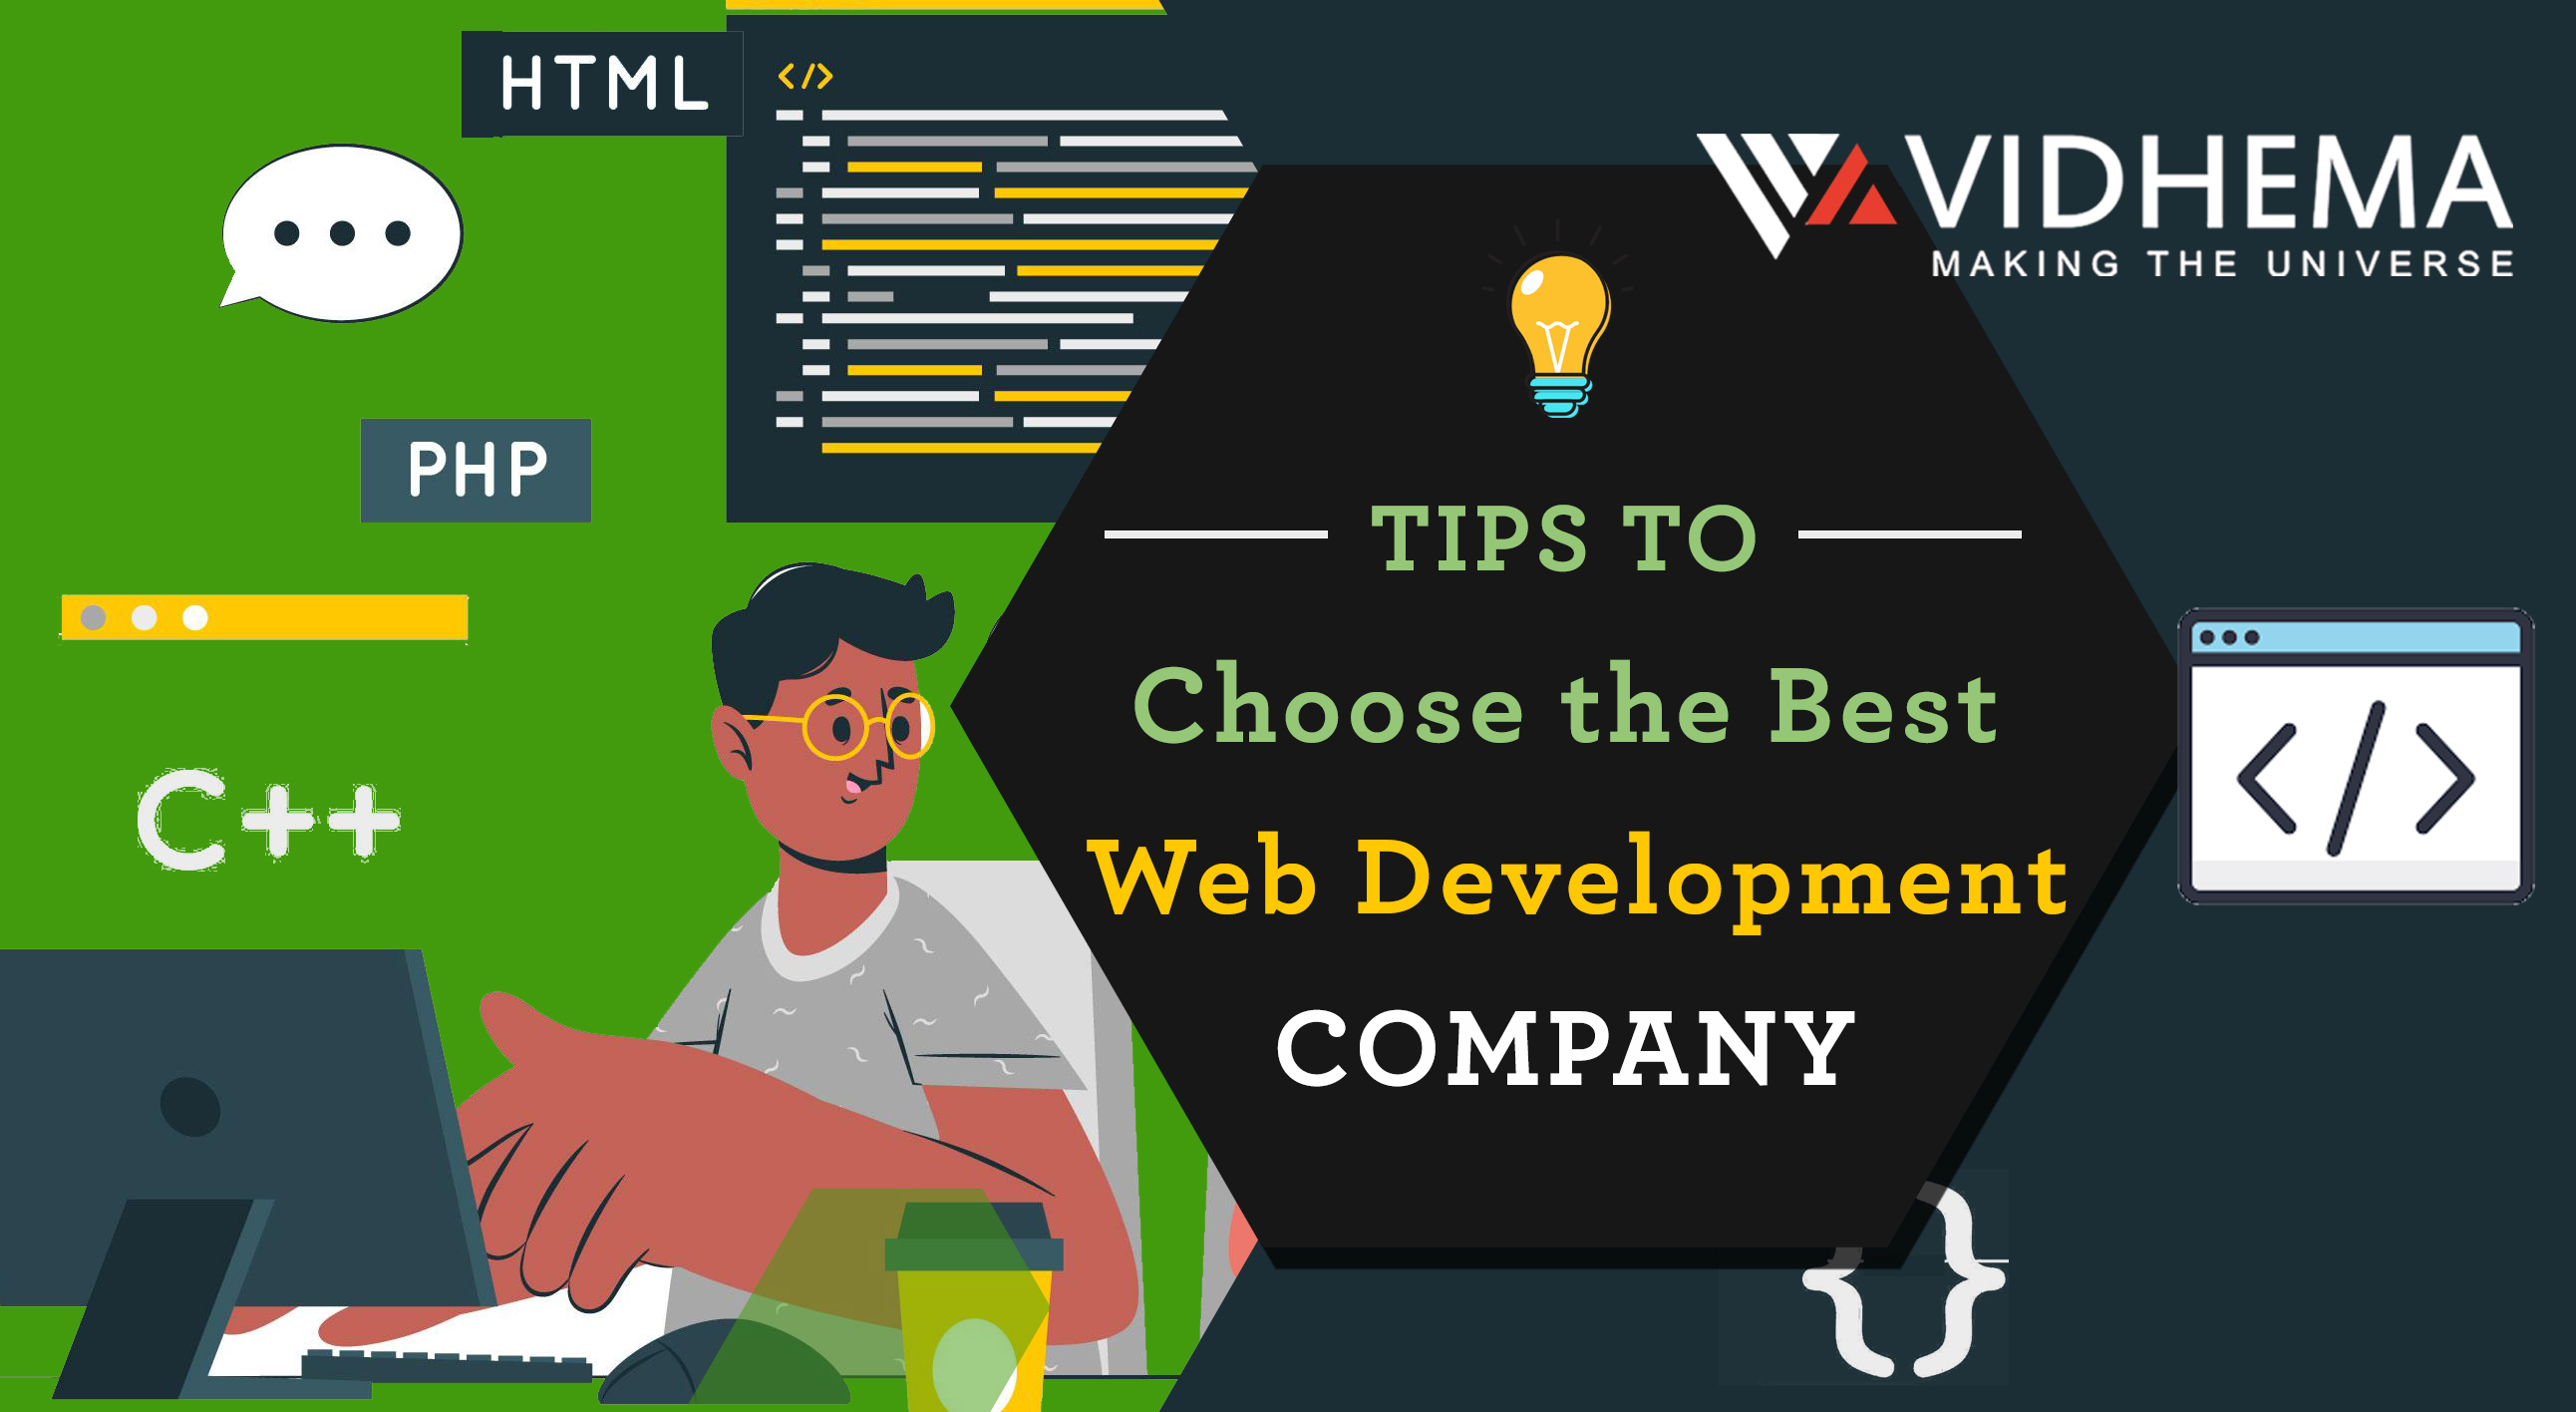 Tips to Choose the Best Web Development Company